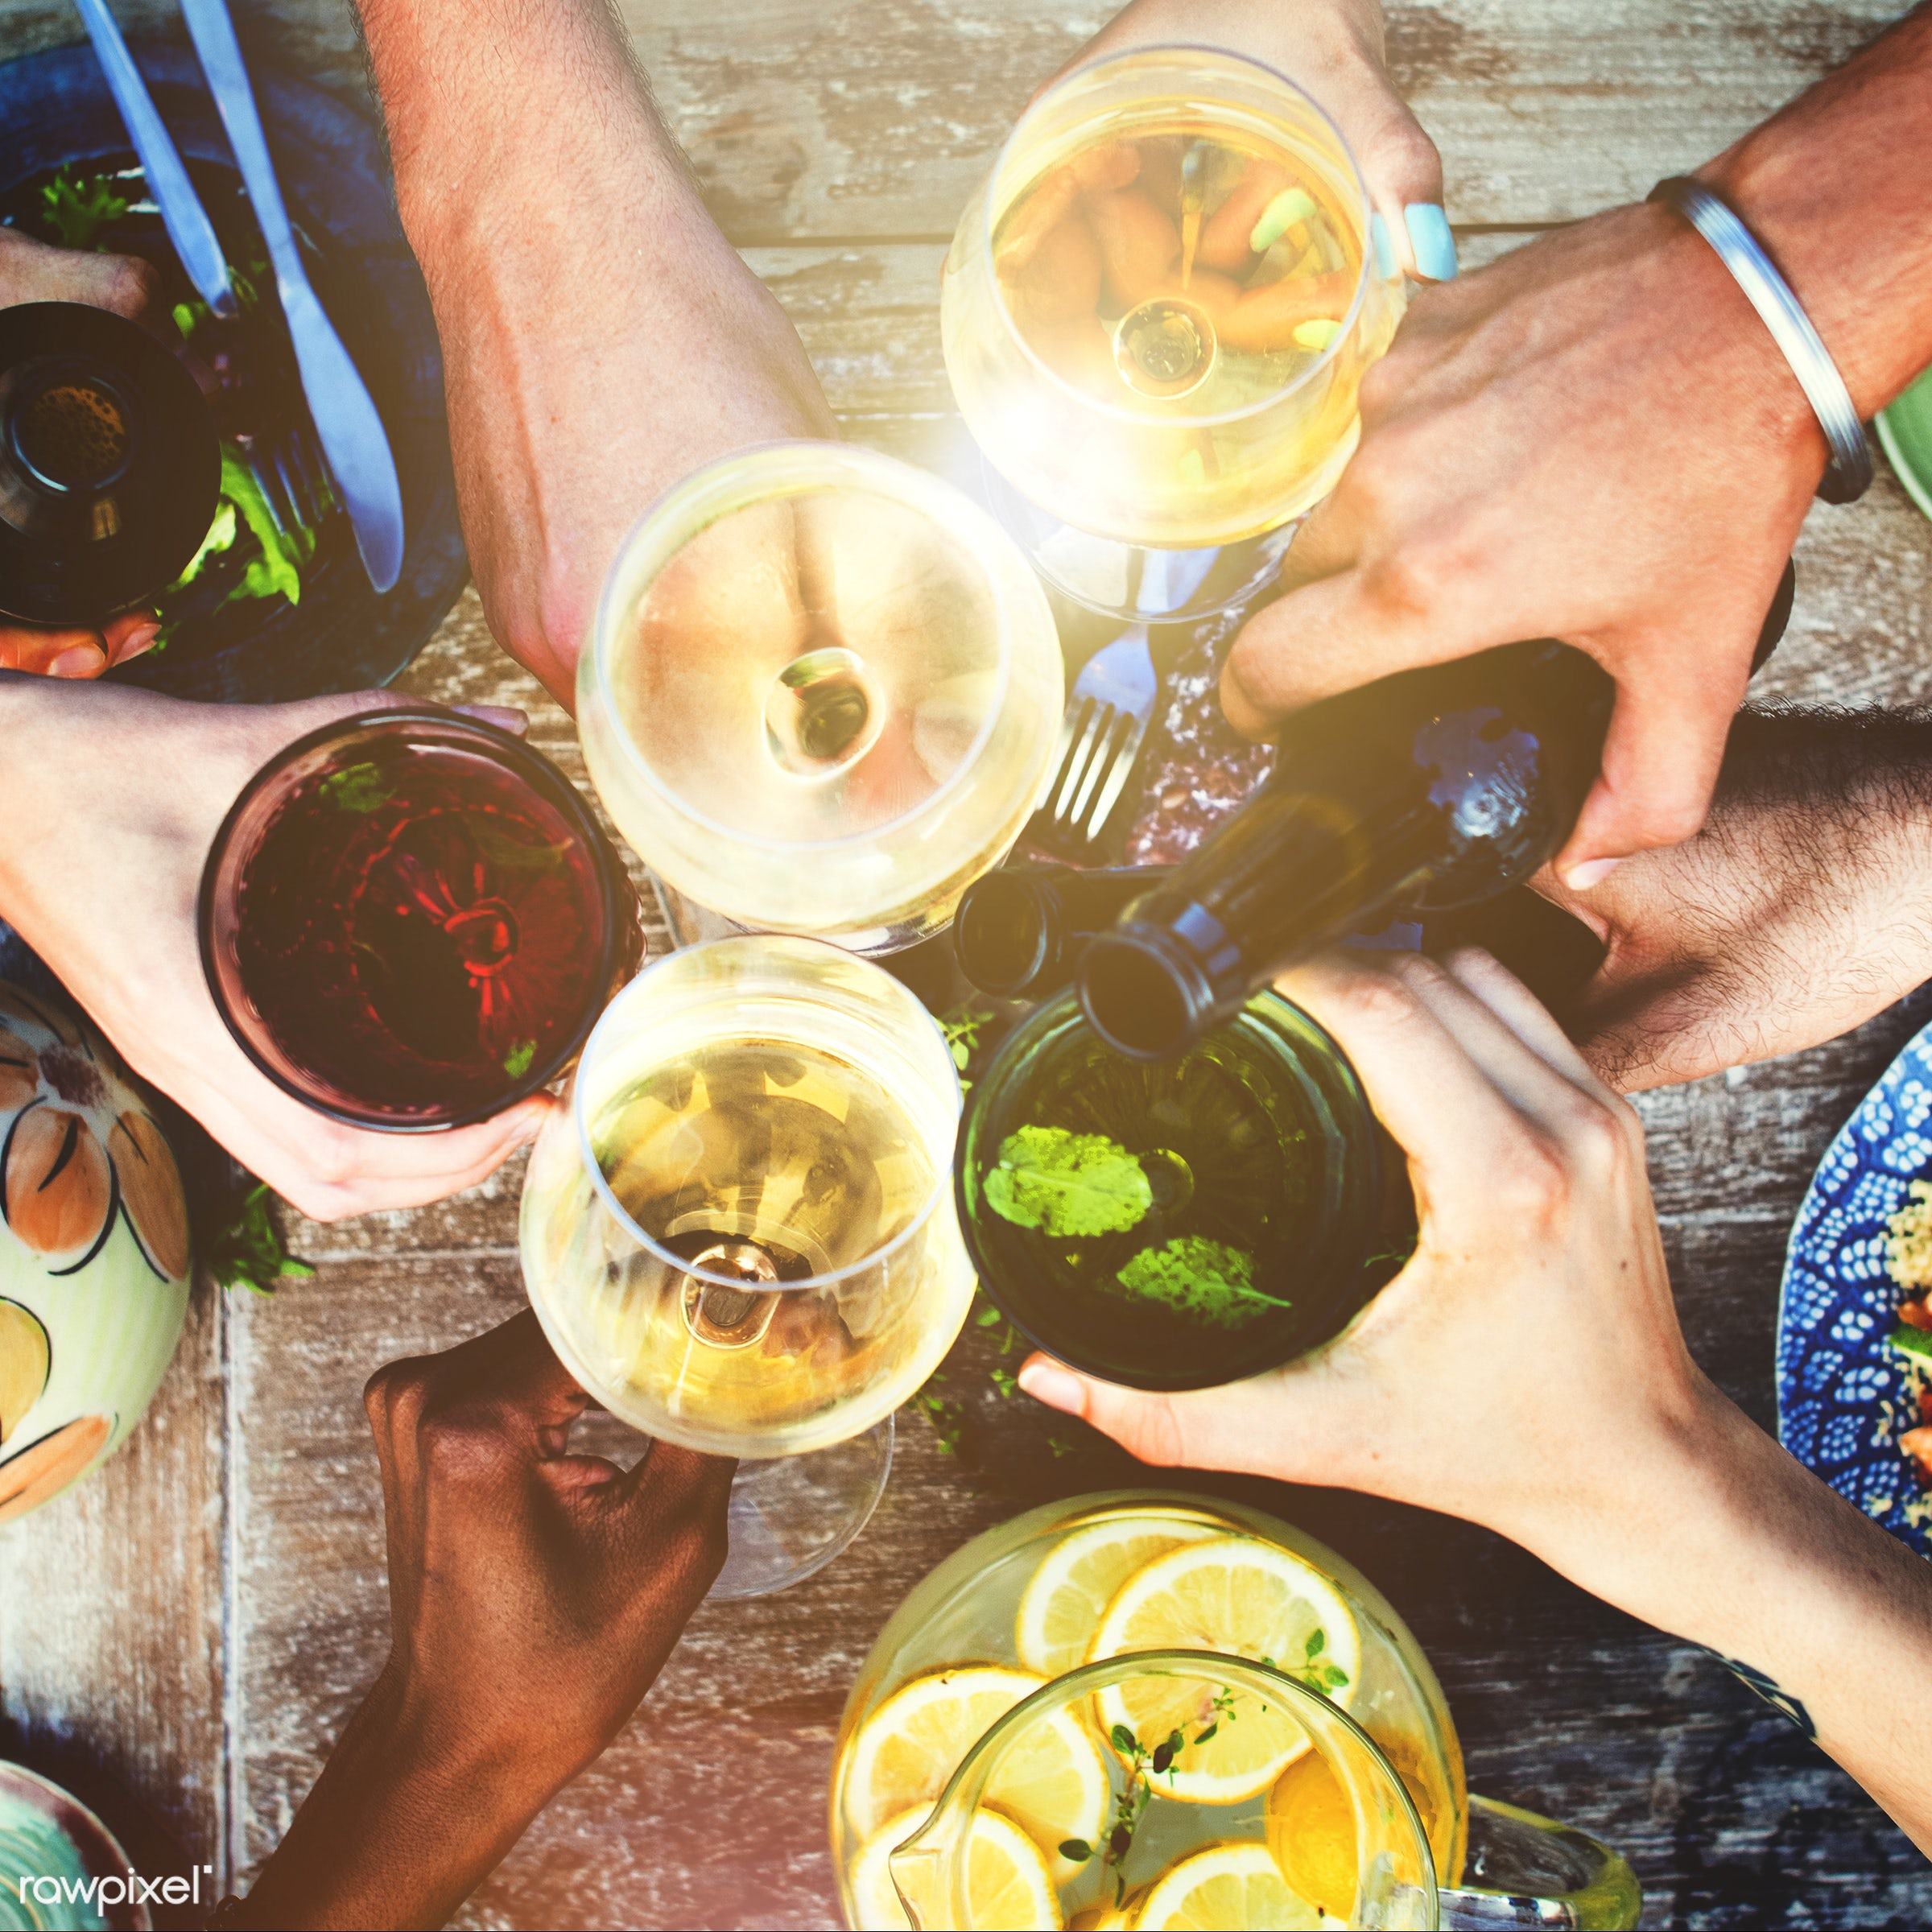 beer, aerial view, allspice, beverage, bowl, champagne, cheers, color, colorful, cook, cuisine, delicious, dinner, drink,...